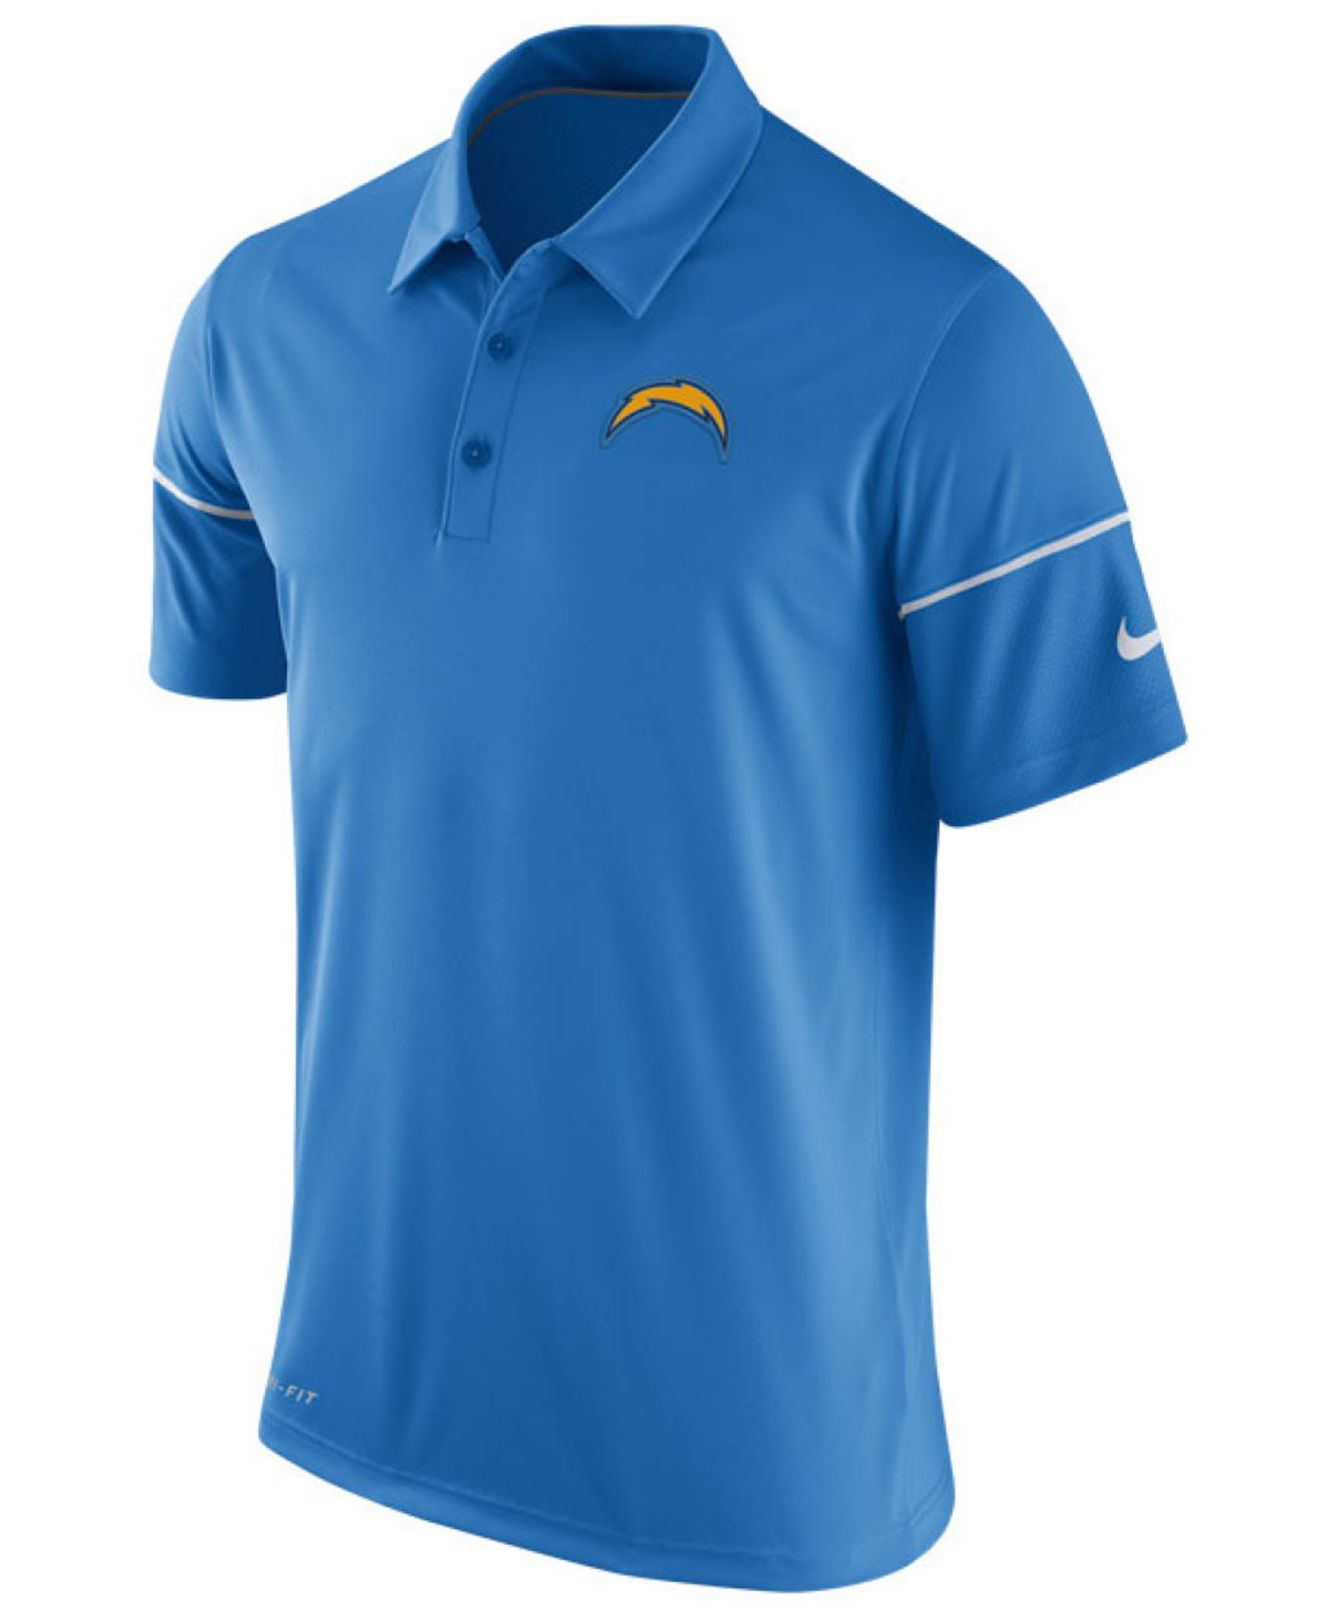 San Diego Chargers Dress: Nike Men's San Diego Chargers Team Issue Polo Shirt In